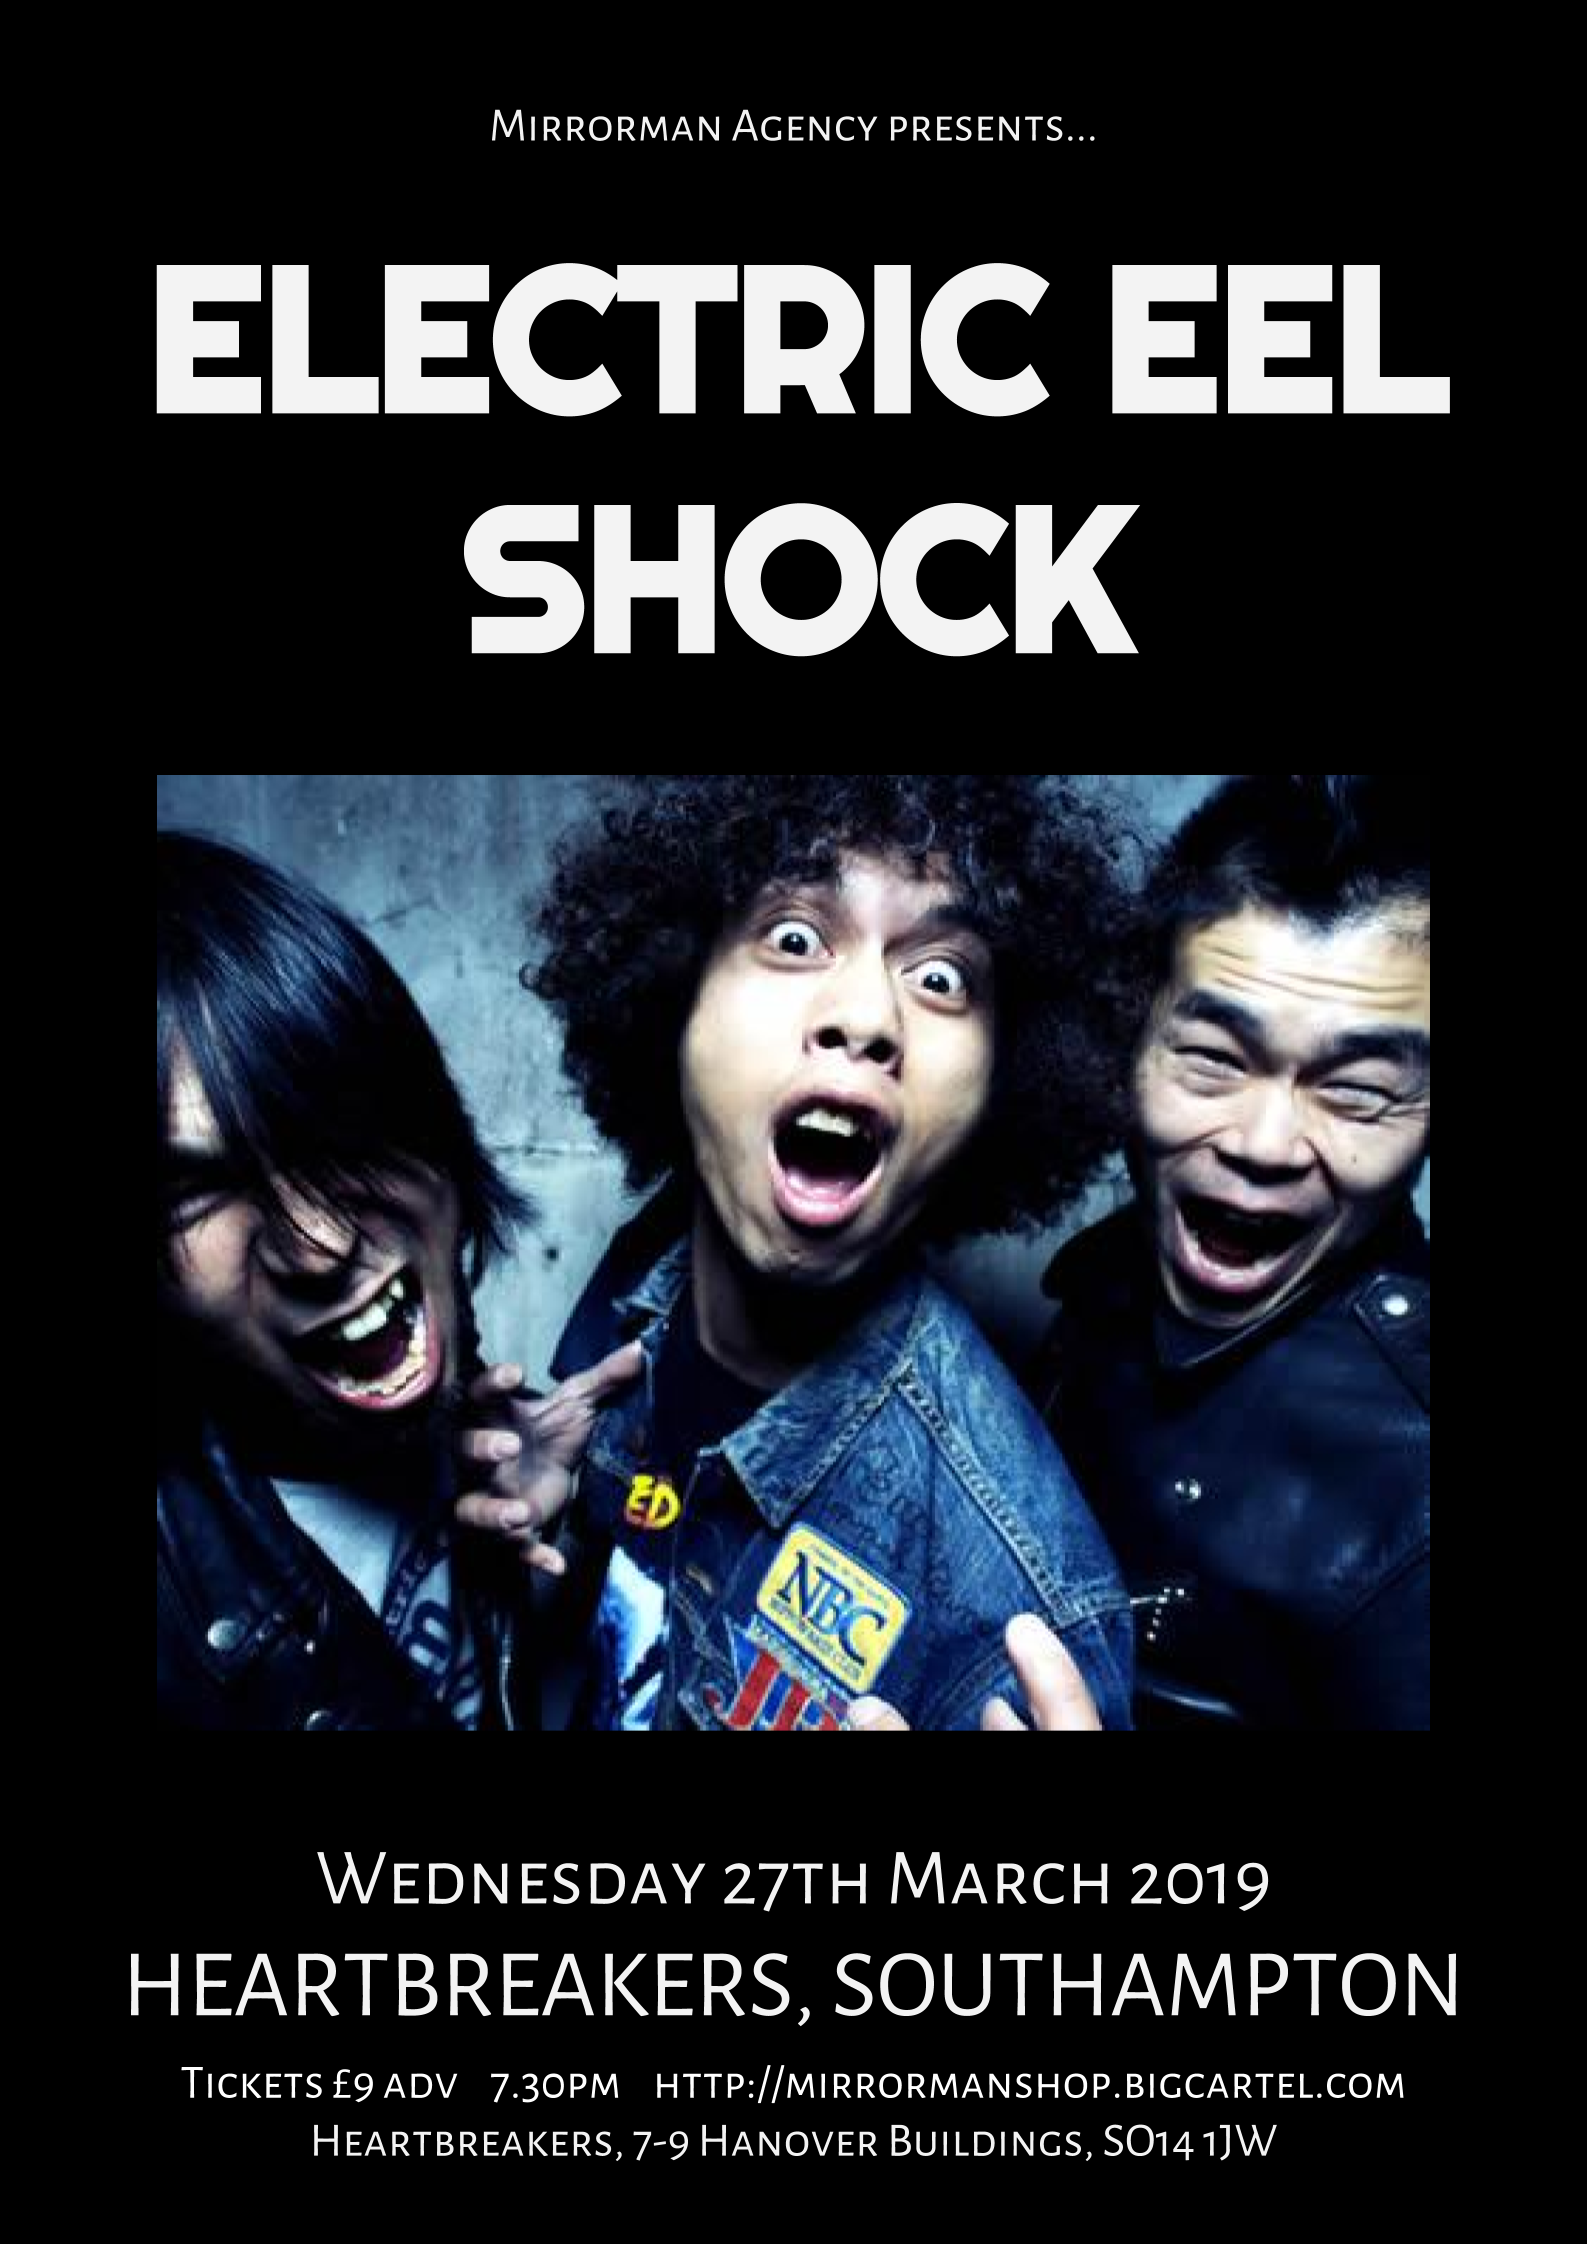 Electric Eel Shock at Heartbreakers, Southampton